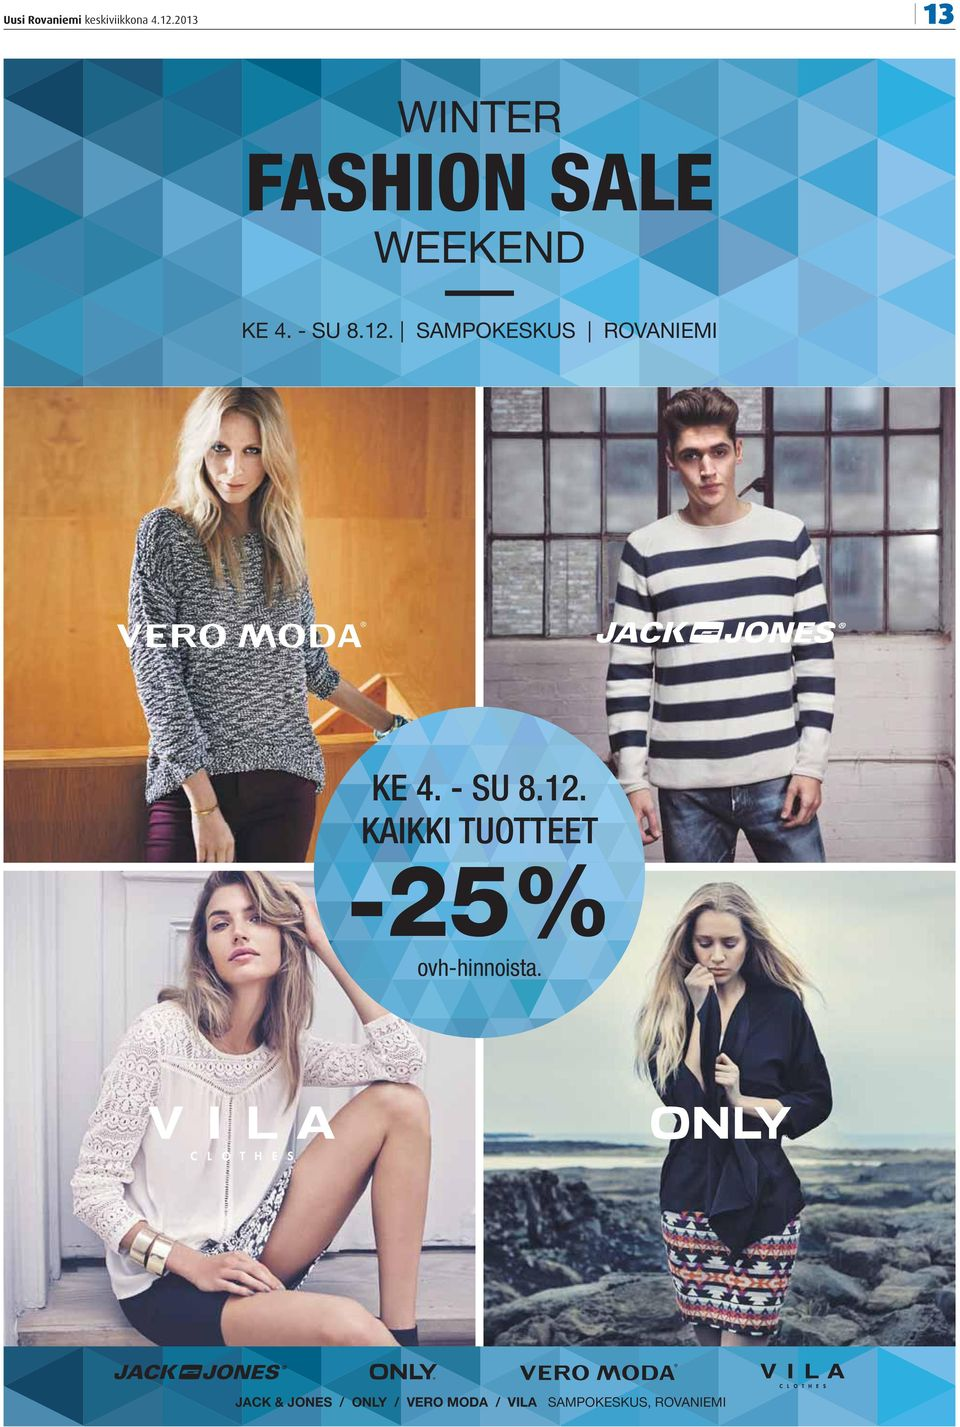 JACK & JONES / ONLY / VERO MODA / VILA